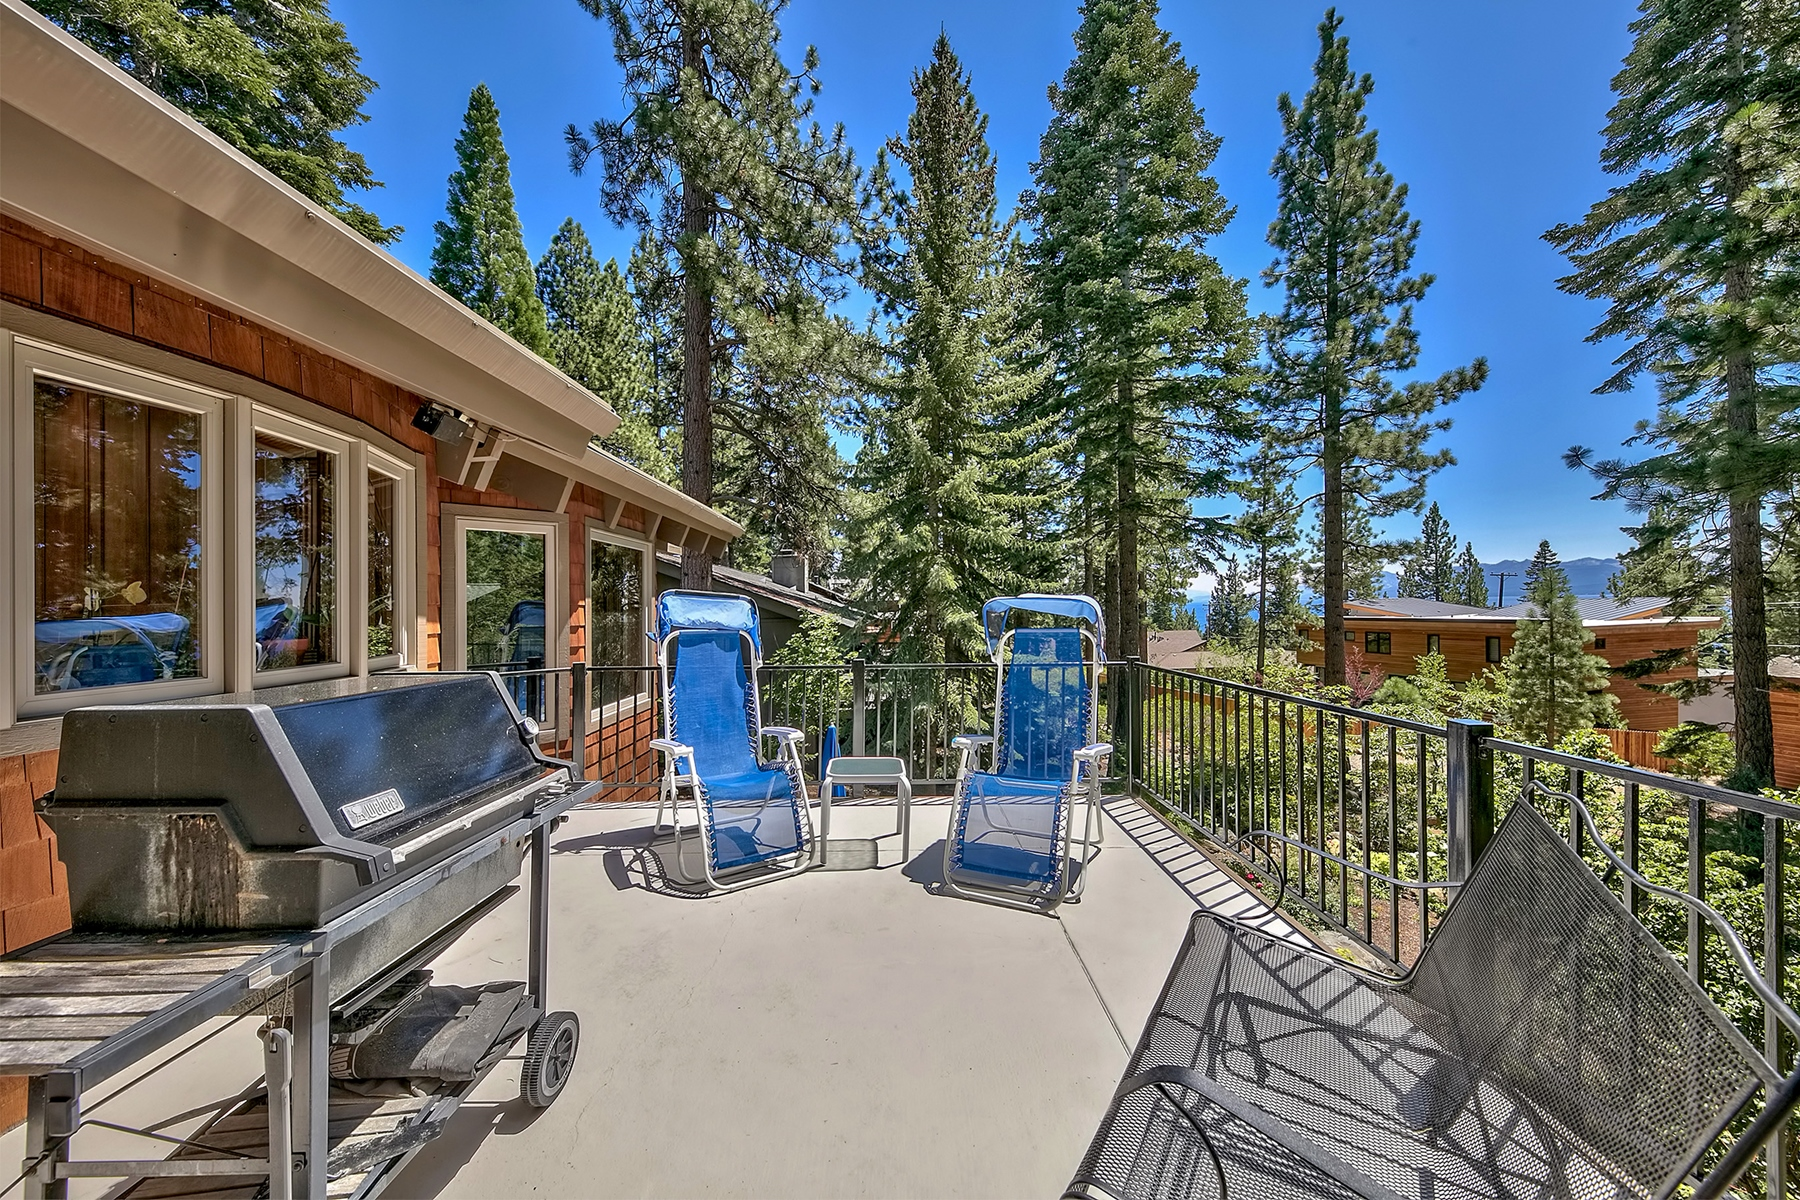 Additional photo for property listing at 137 Marlette Drive, Tahoe City, CA 137 Marlette Drive Tahoe City, California 96145 Estados Unidos